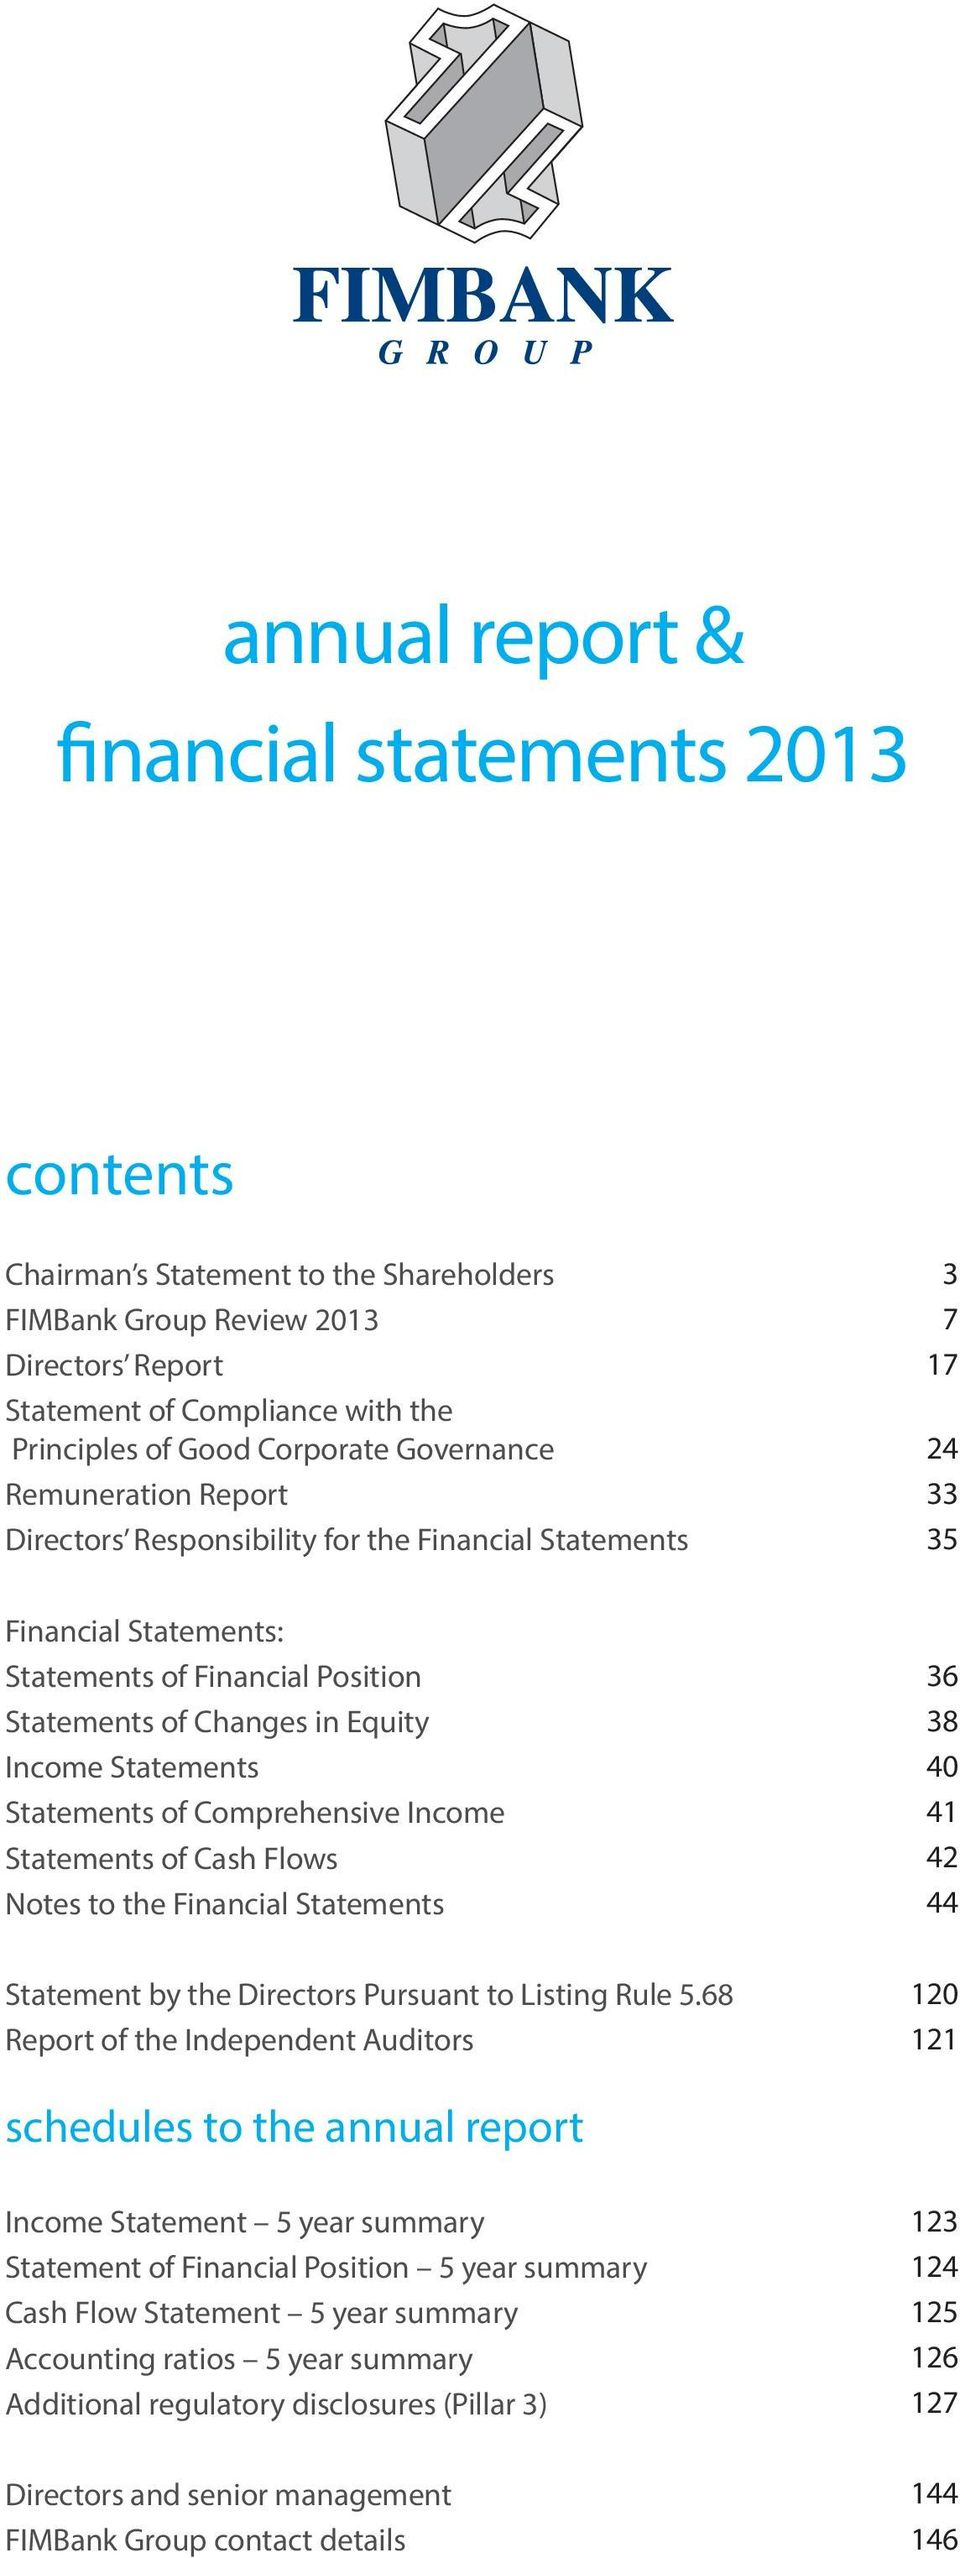 Statements Statements of Comprehensive Income Statements of Cash Flows Notes to the Financial Statements Statement by the Directors Pursuant to Listing Rule 5.